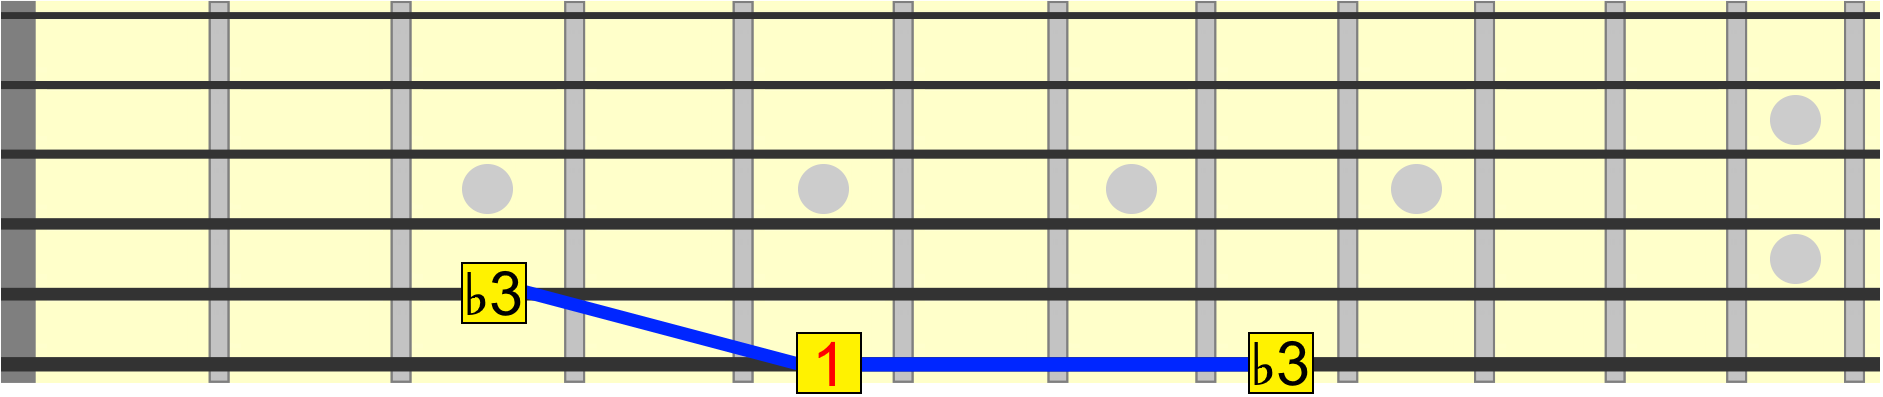 minor 3rd interval on 5th and 6th strings